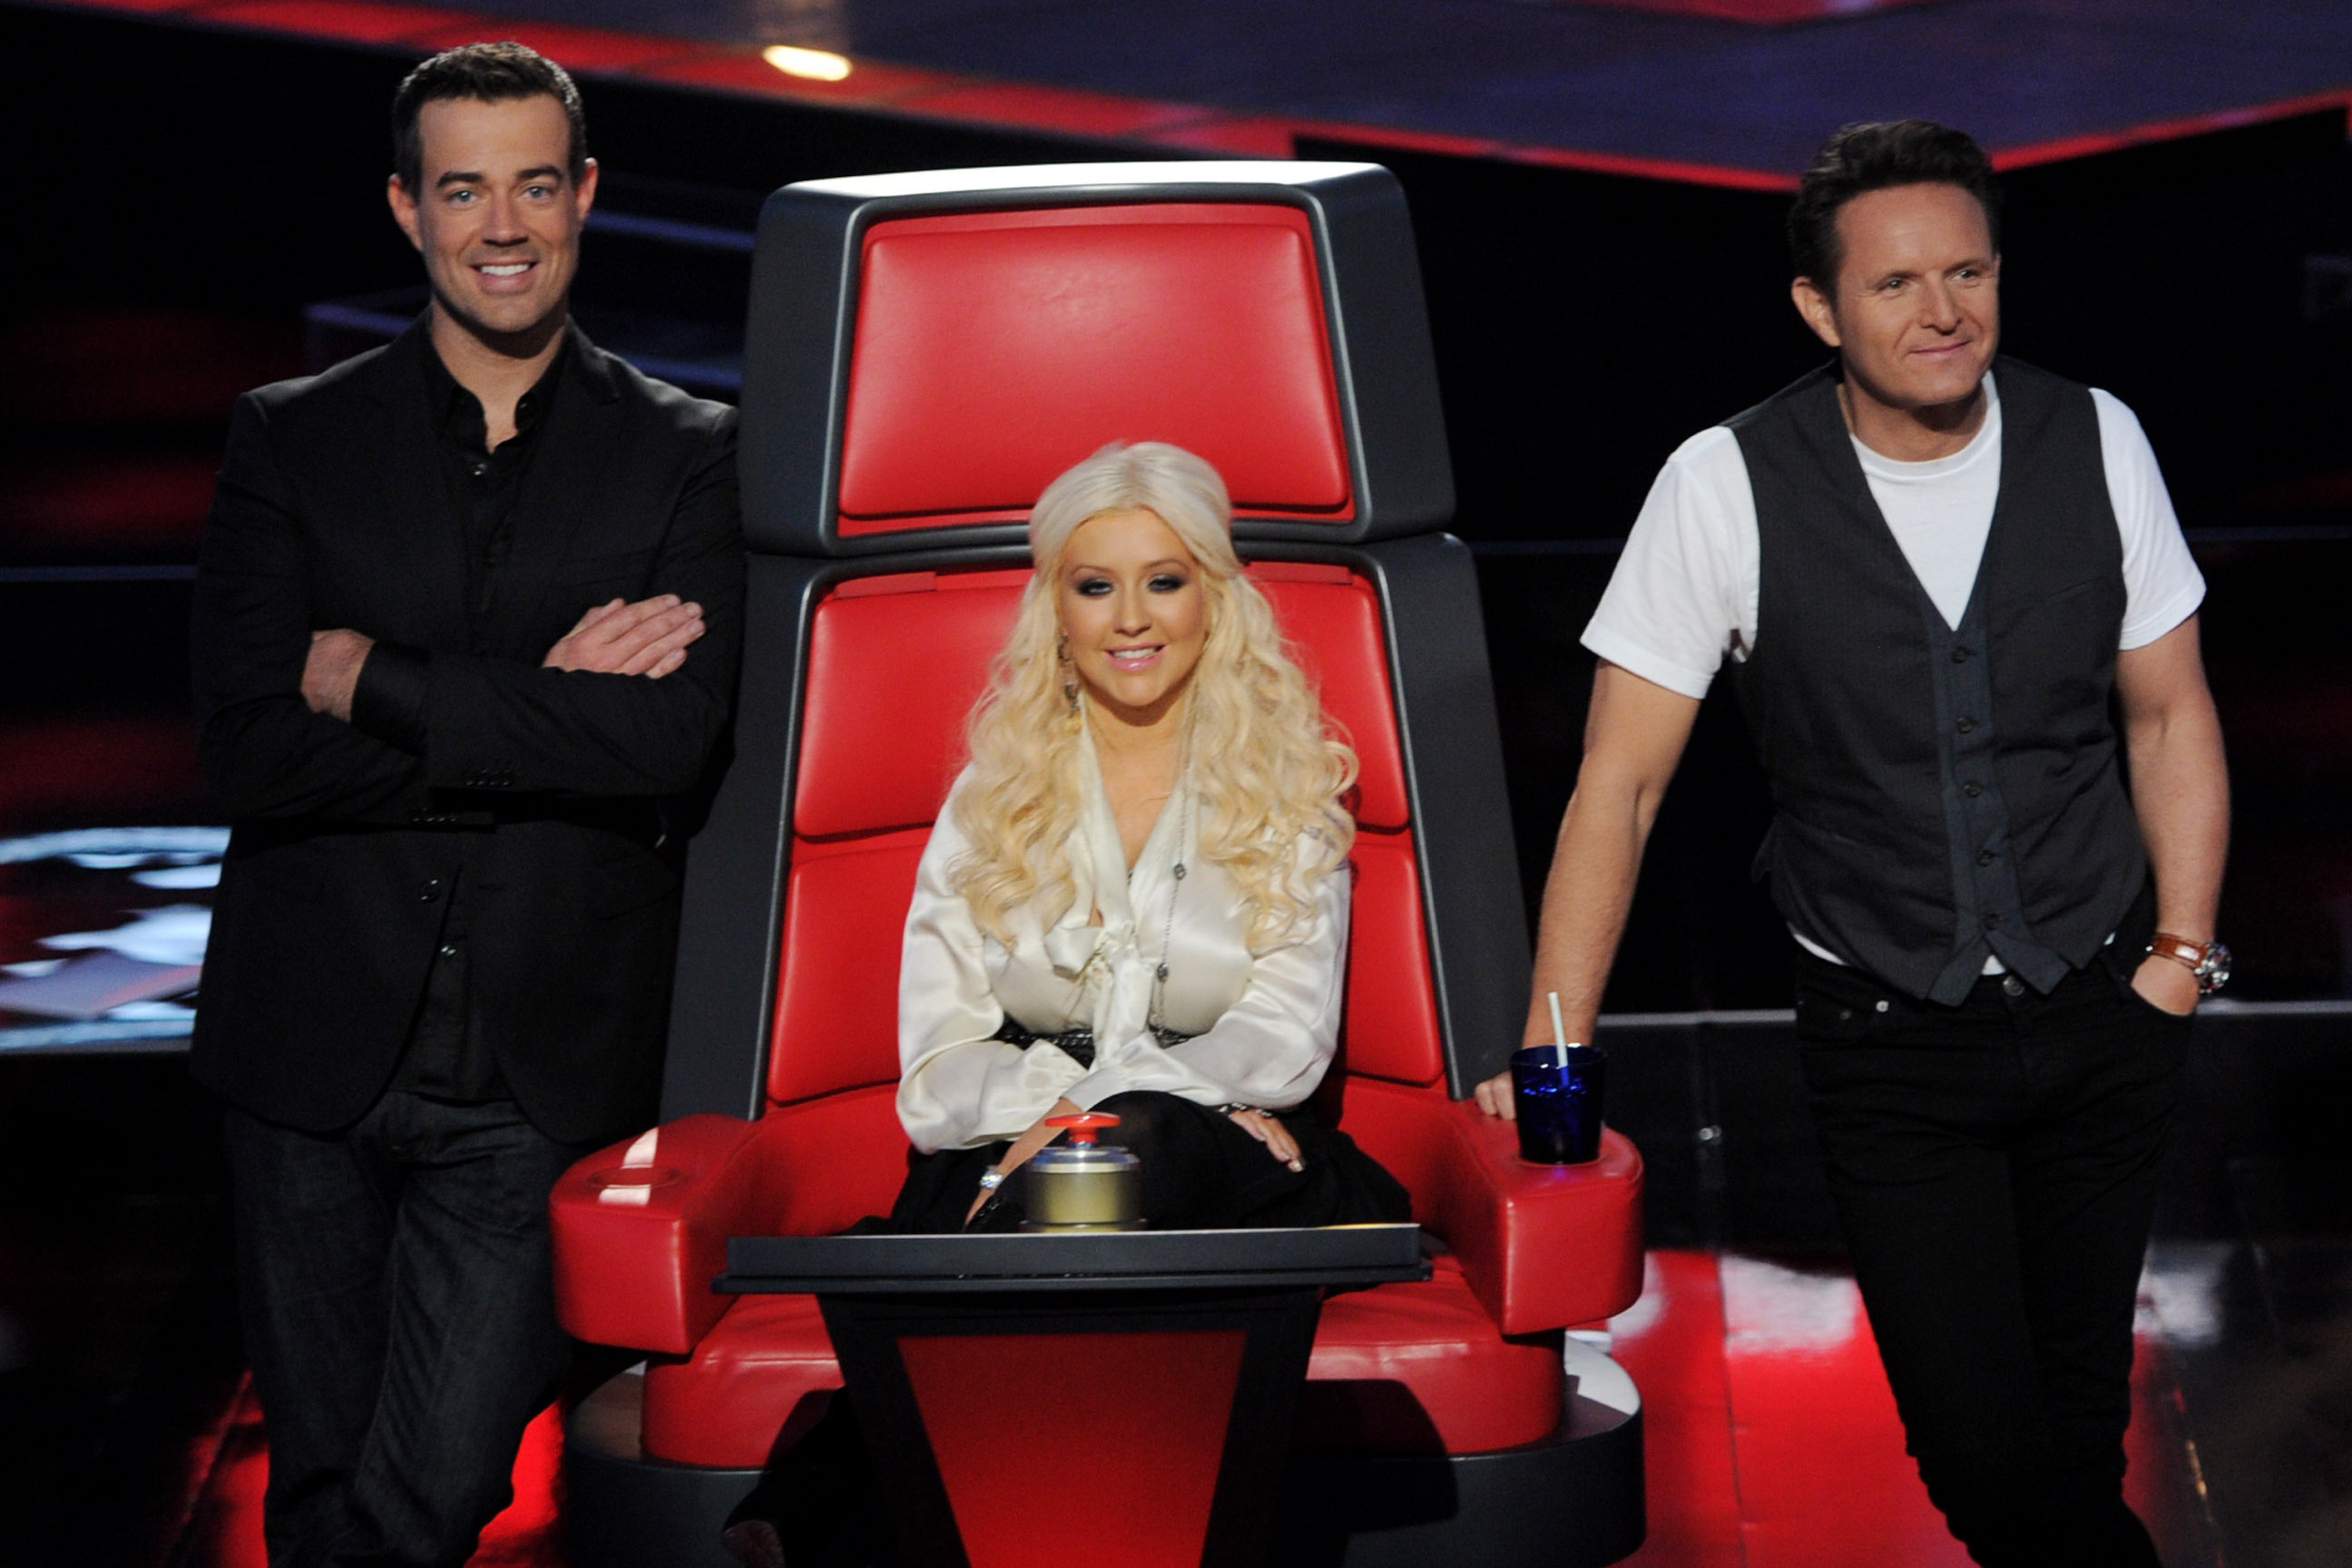 Last year, Aguilera was among the first set of judges on NBC's singing competition The Voice.